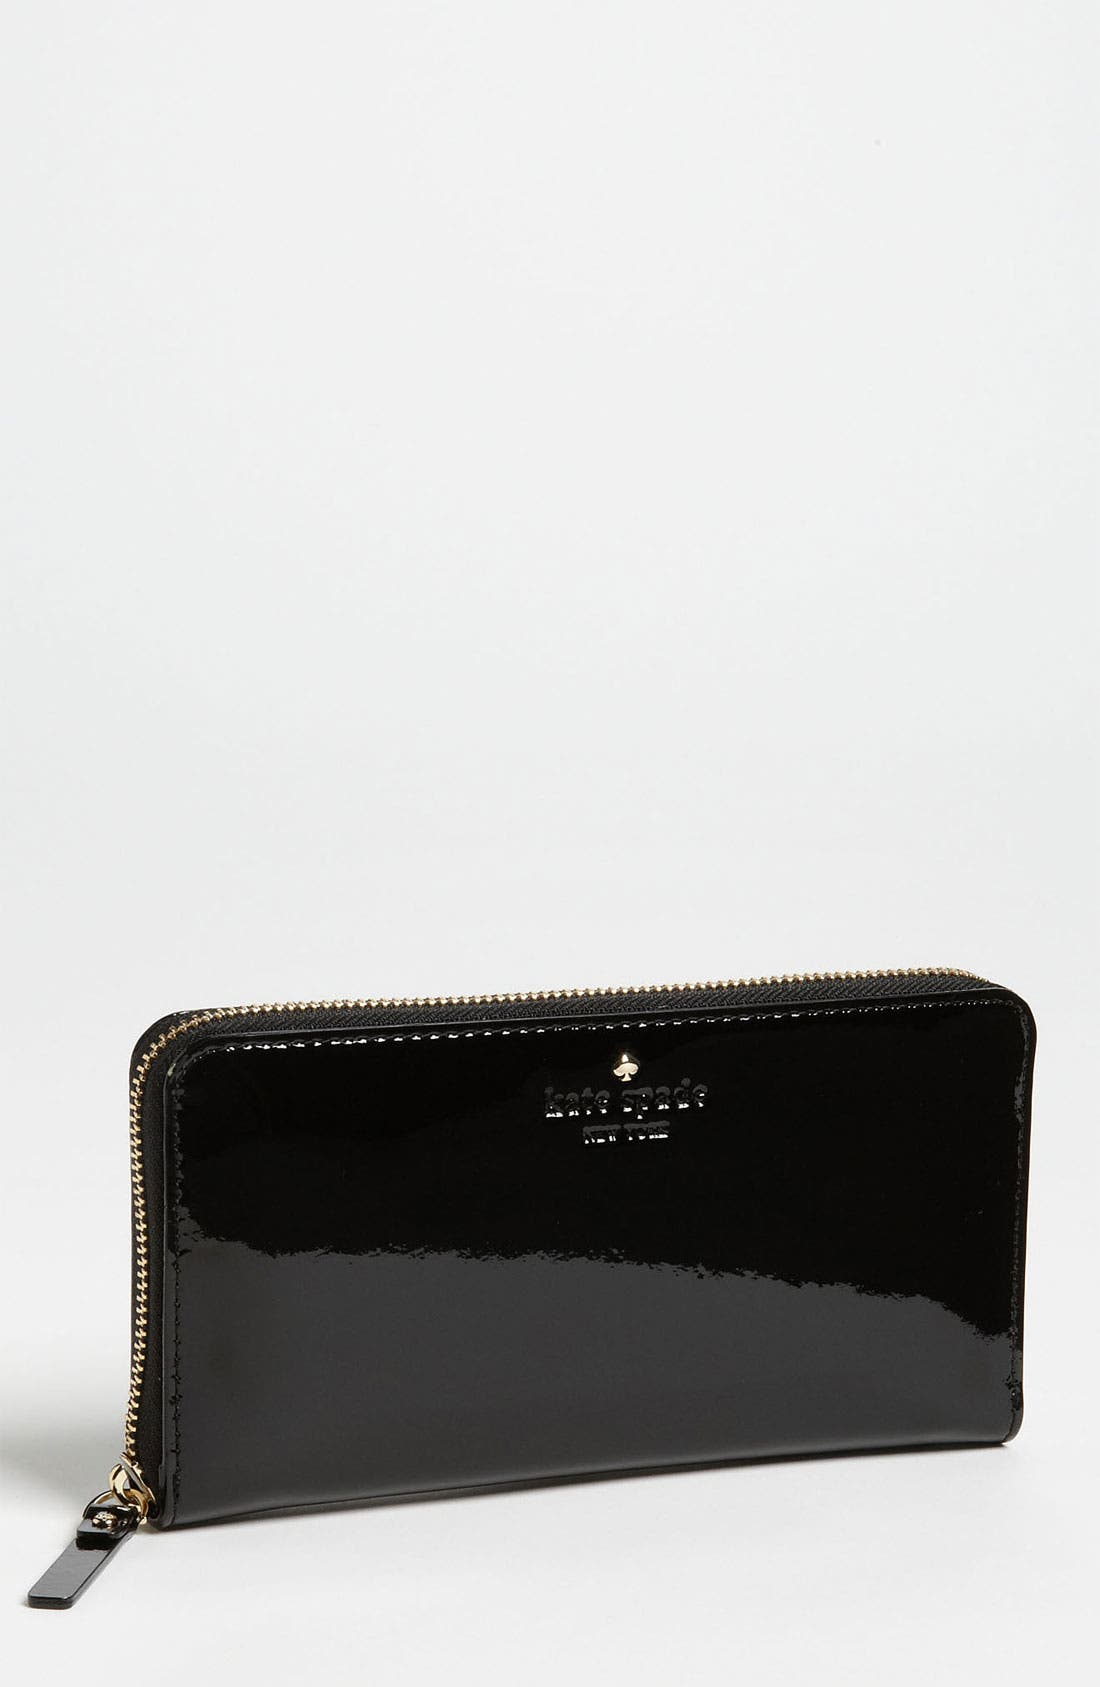 Alternate Image 1 Selected - kate spade new york 'harrison street - lacey' wallet